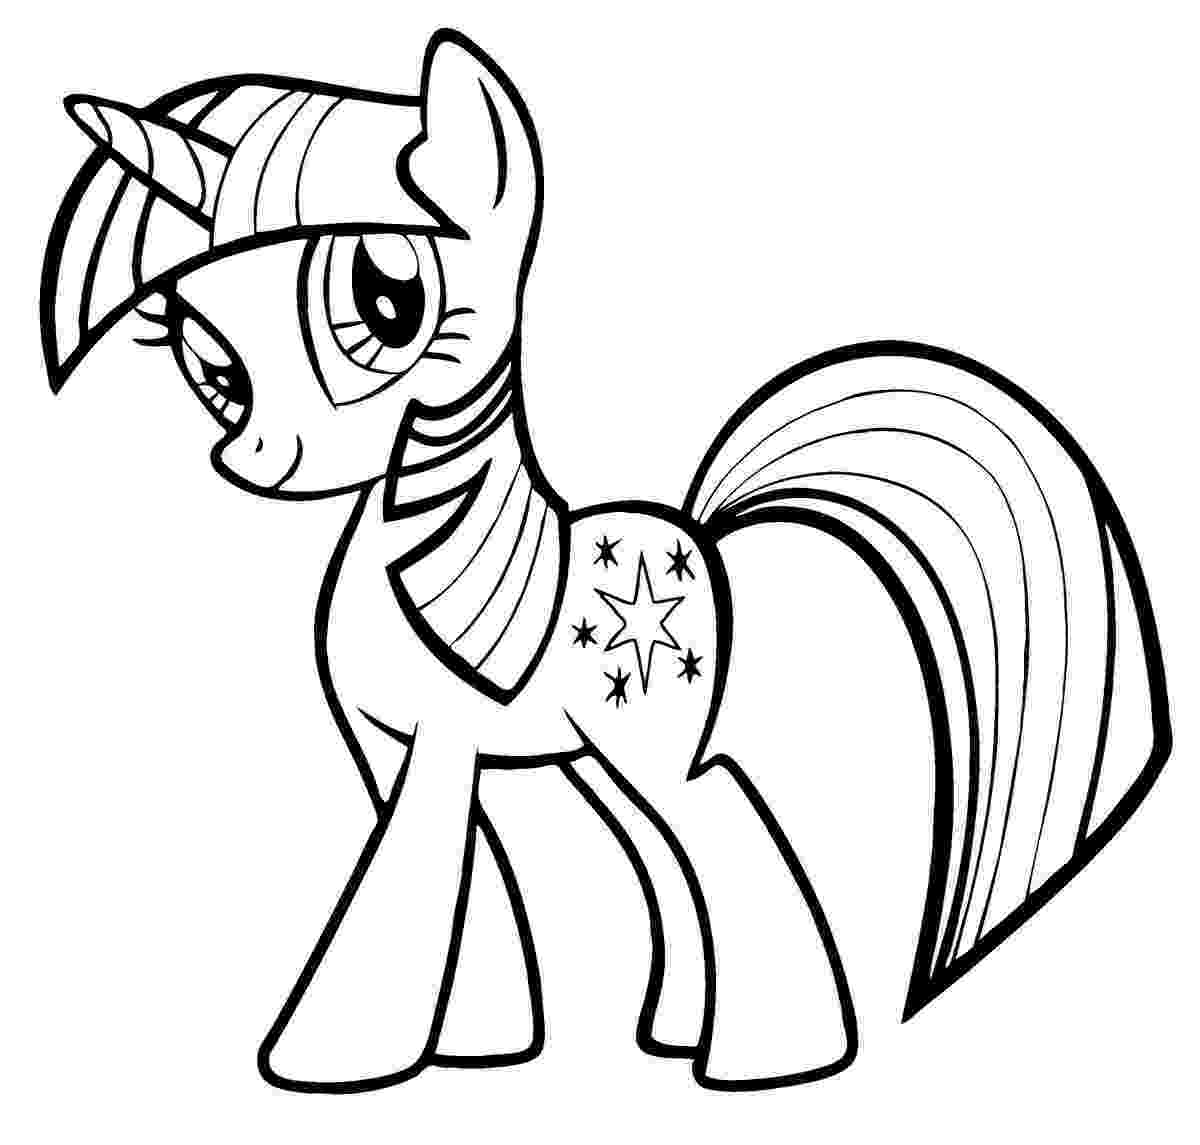 little pony to color free printable my little pony coloring pages for kids pony little color to